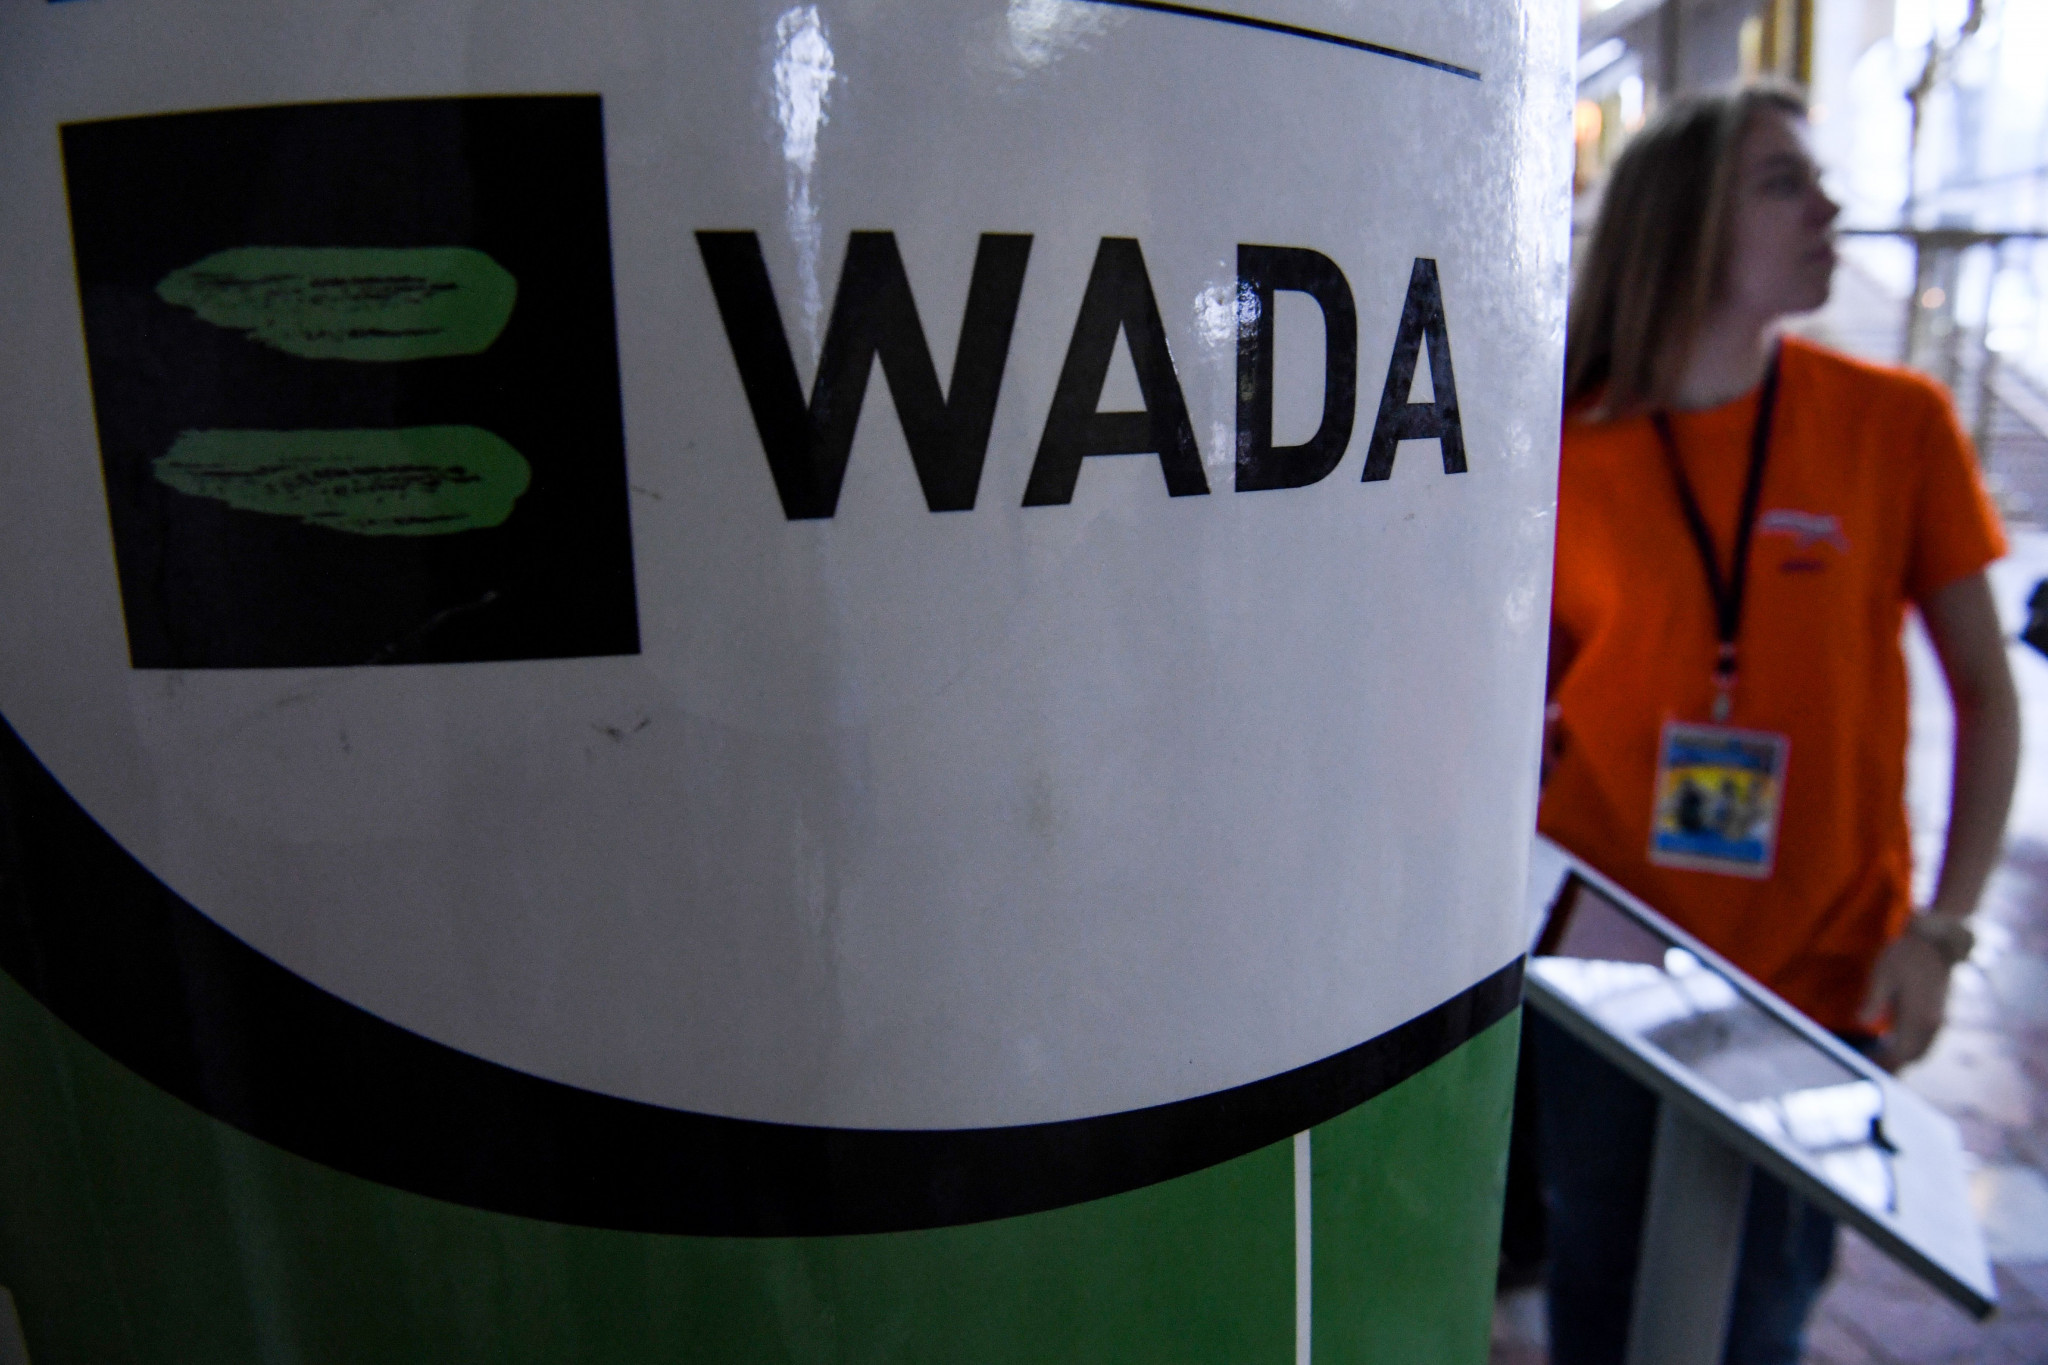 WADA issues reminder as 2021 World Anti-Doping Code enters into force